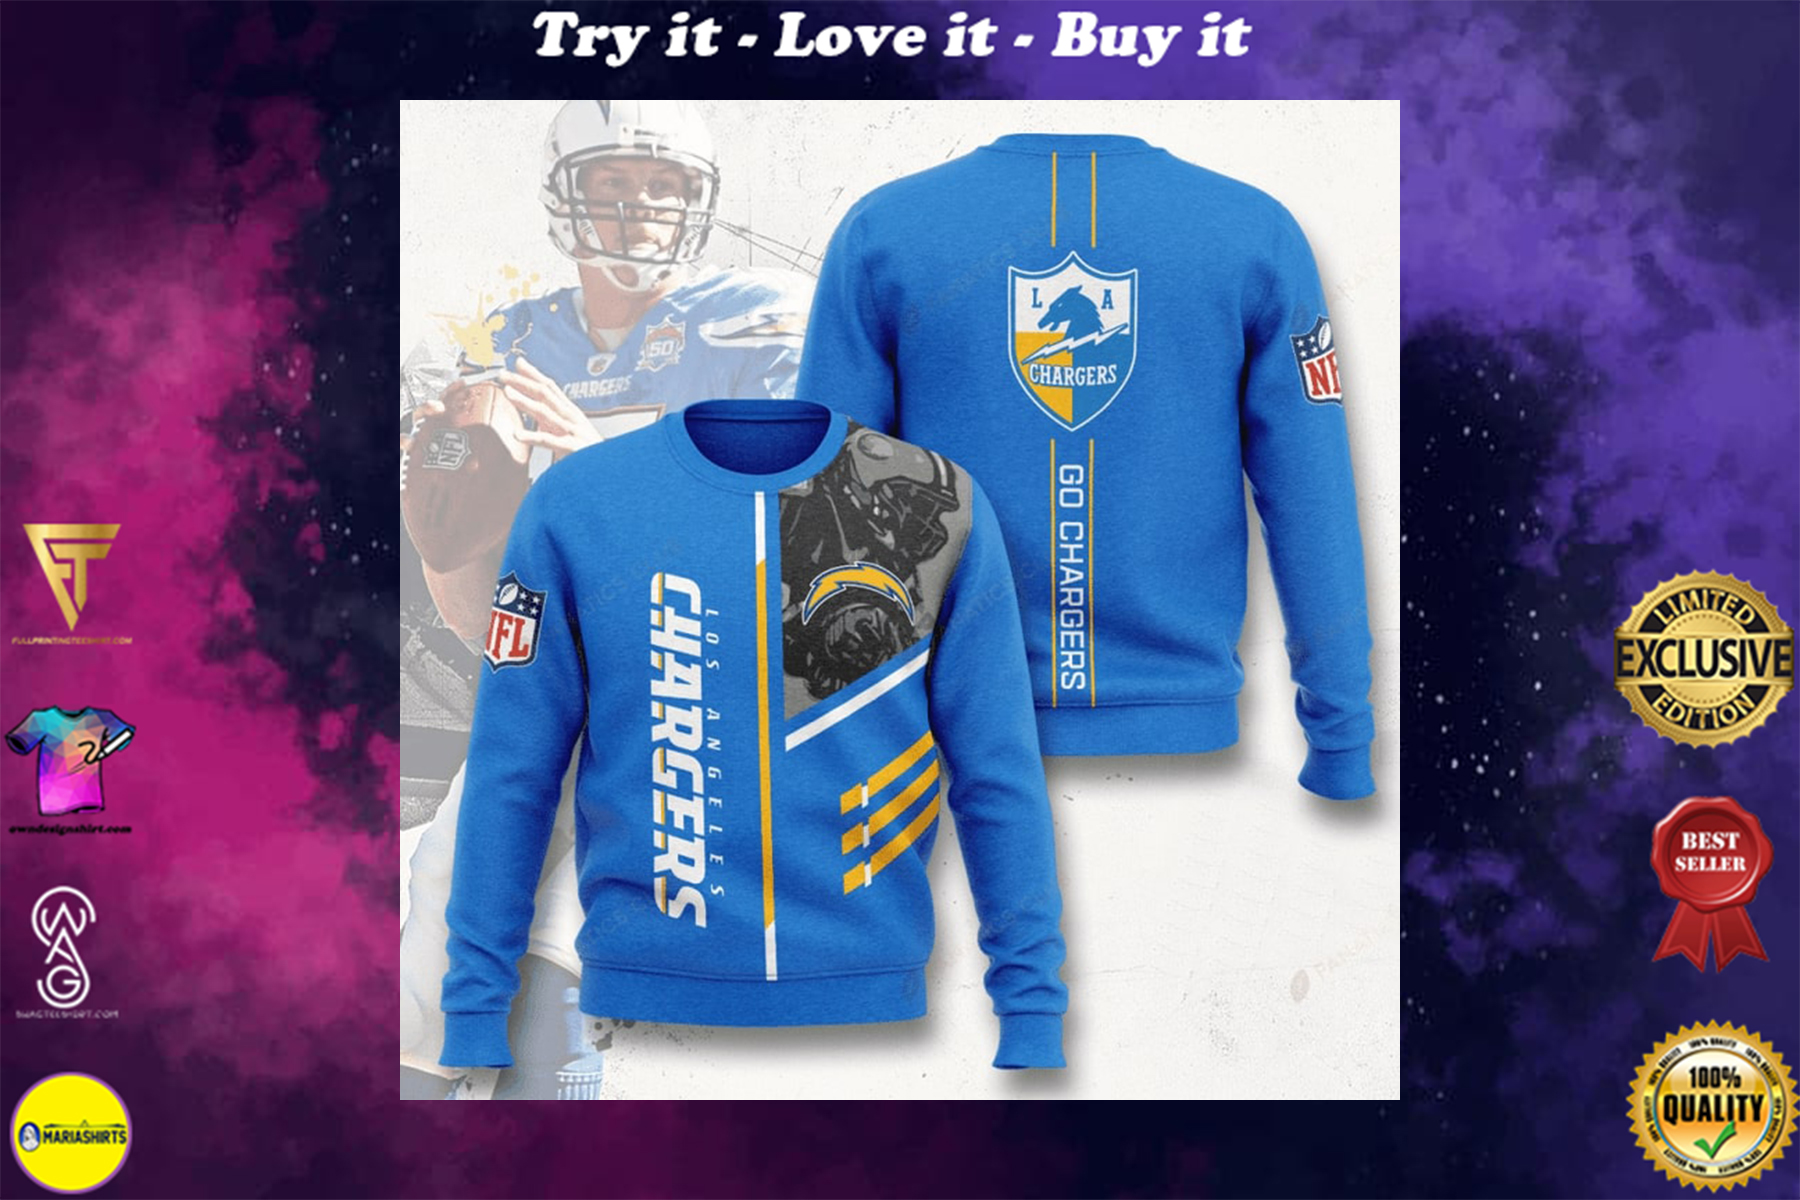 [special edition] los angeles chargers go chargers full printing ugly sweater - maria